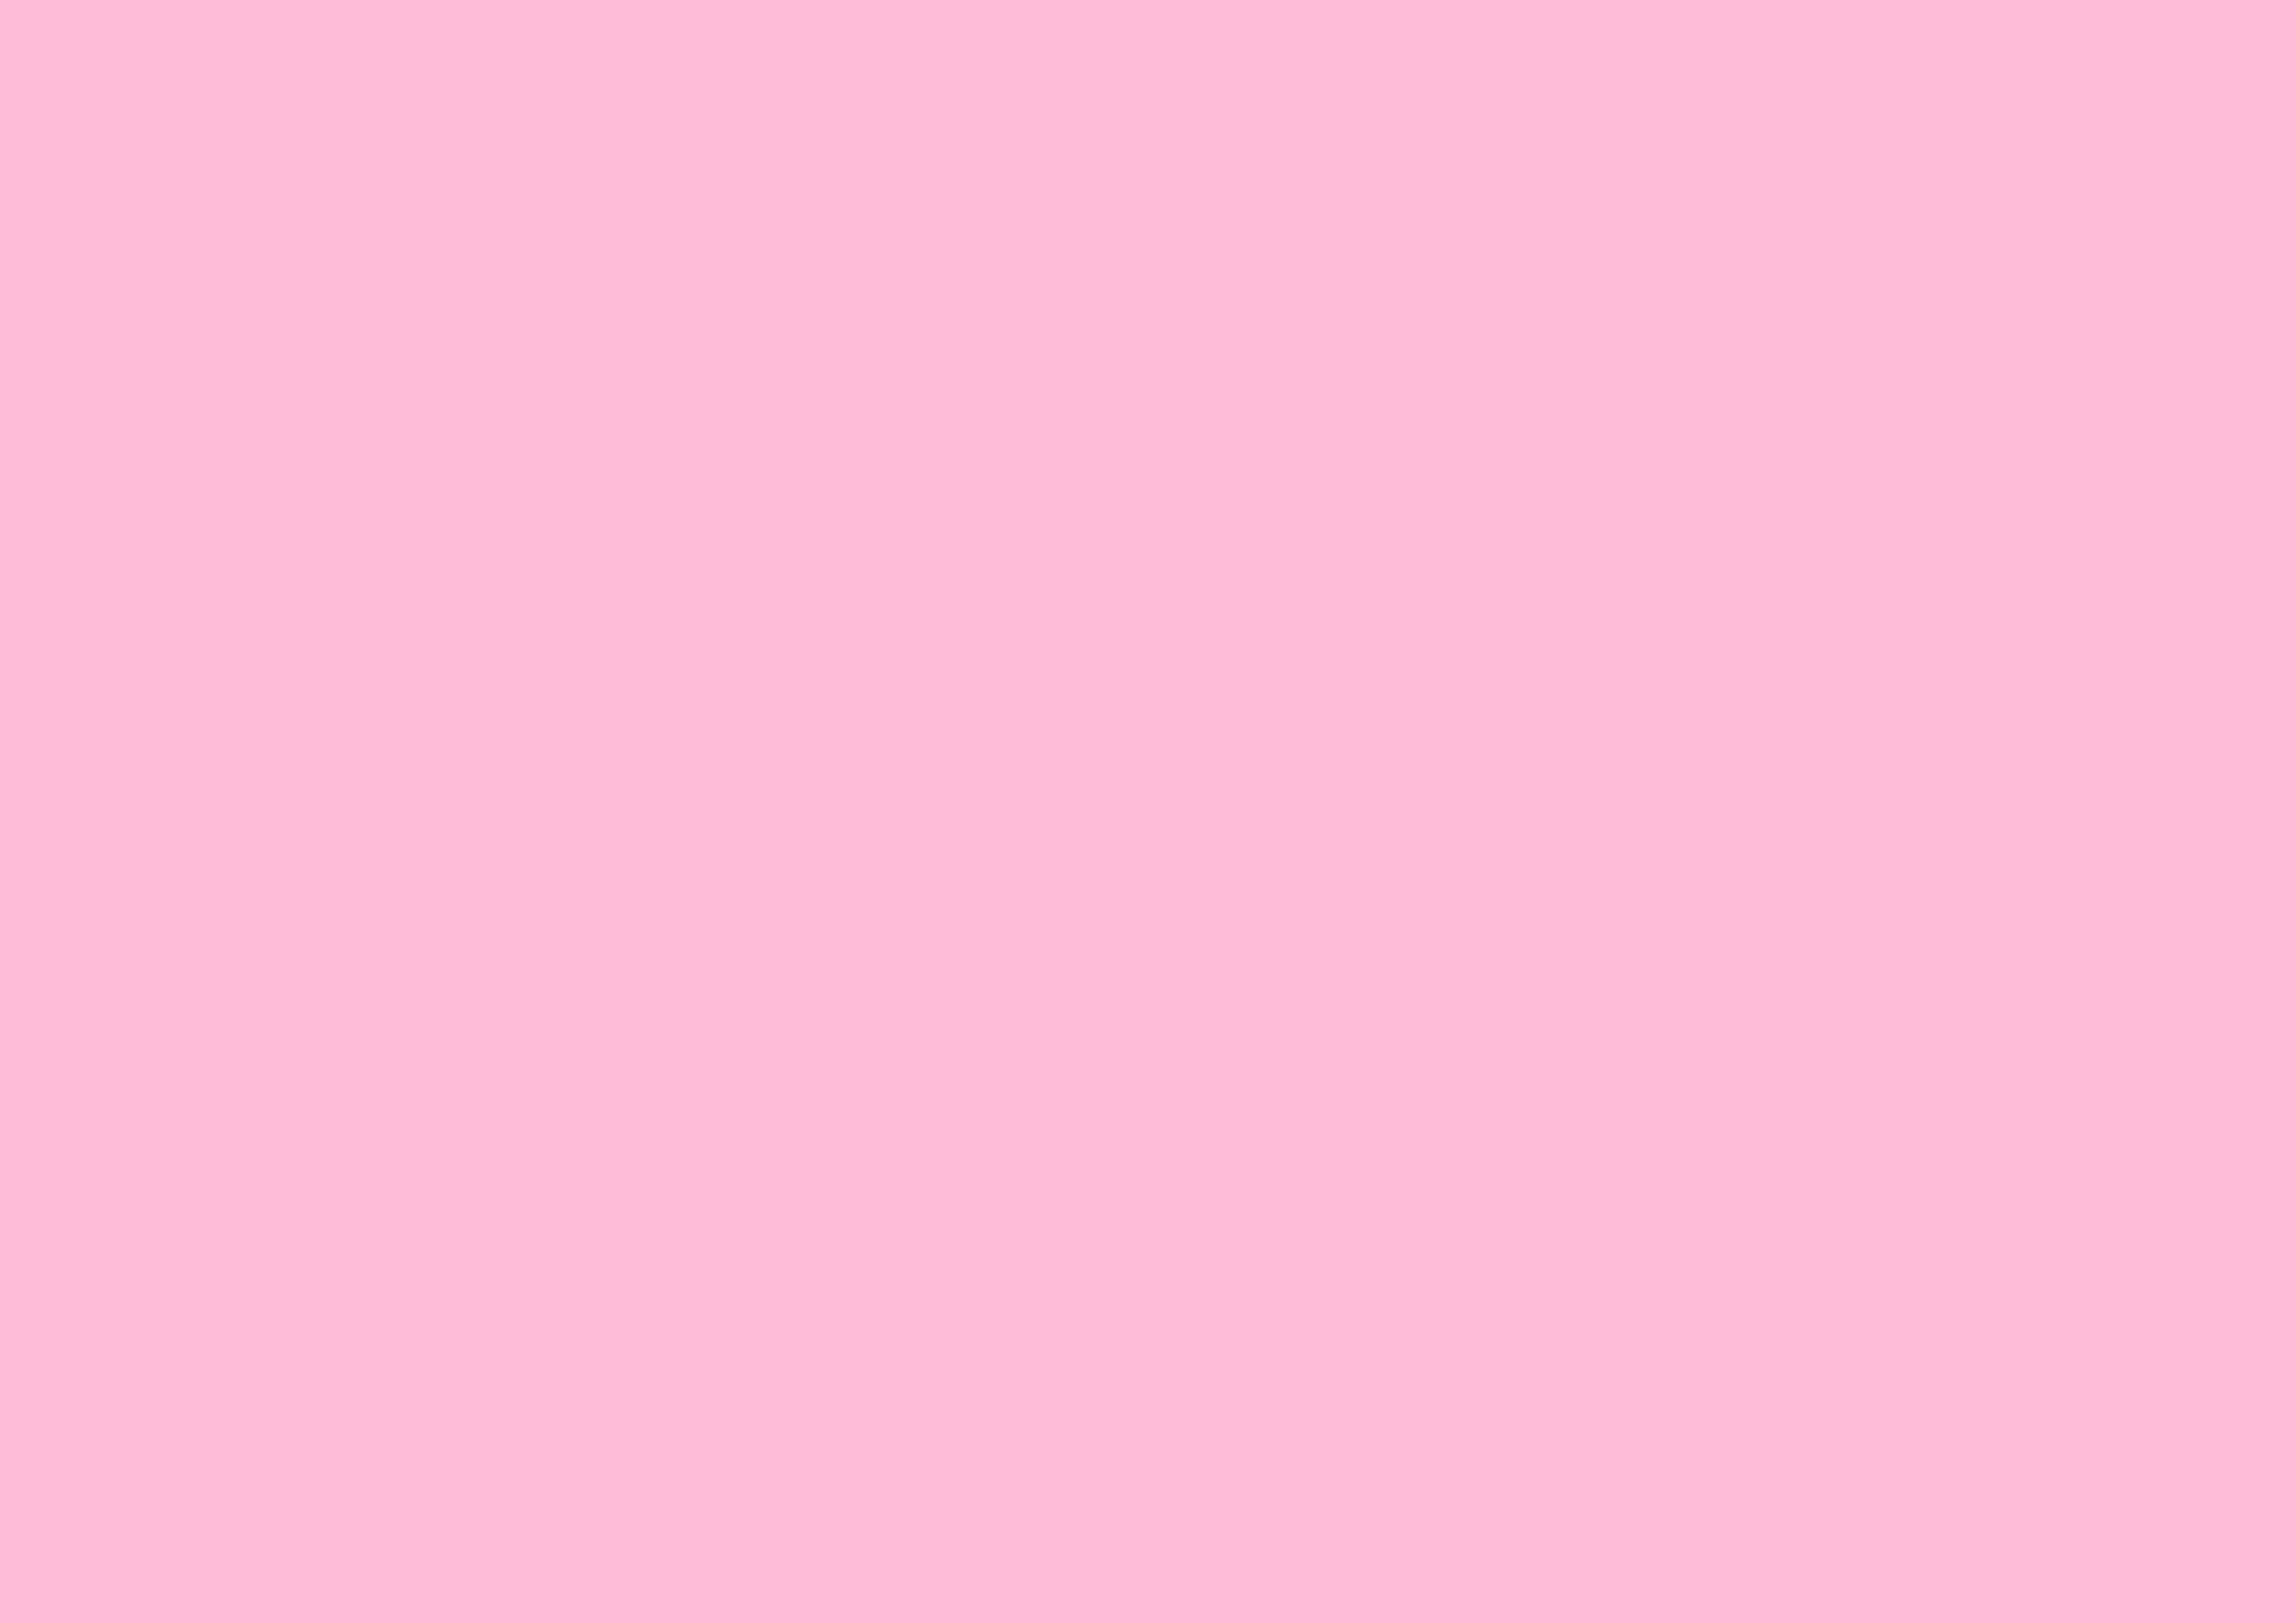 3508x2480 Cotton Candy Solid Color Background